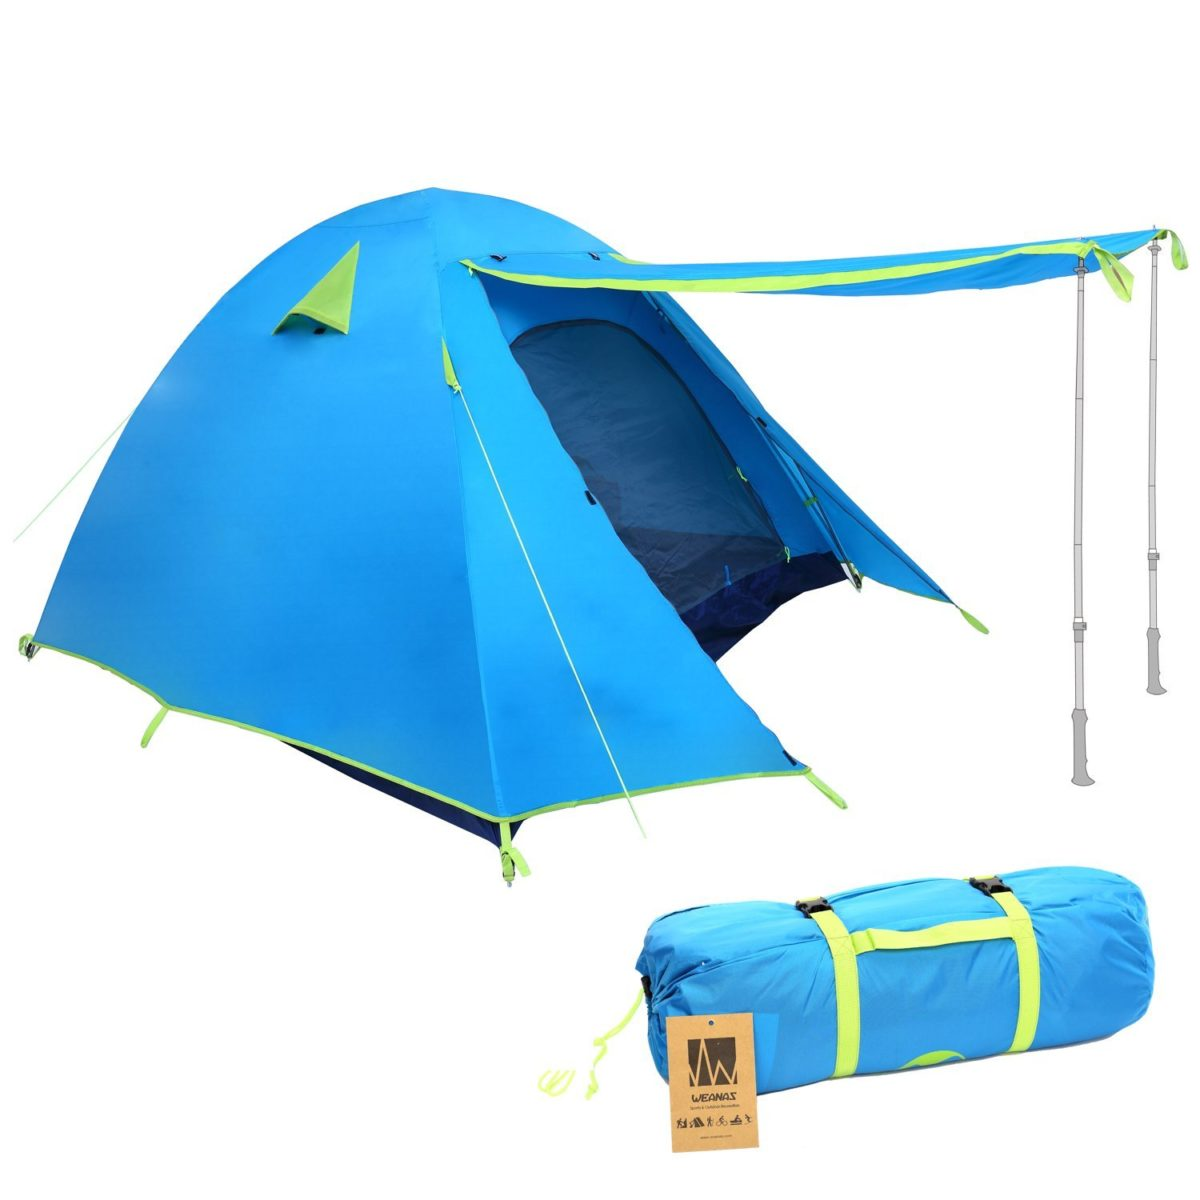 Weanas Tent for budget camping